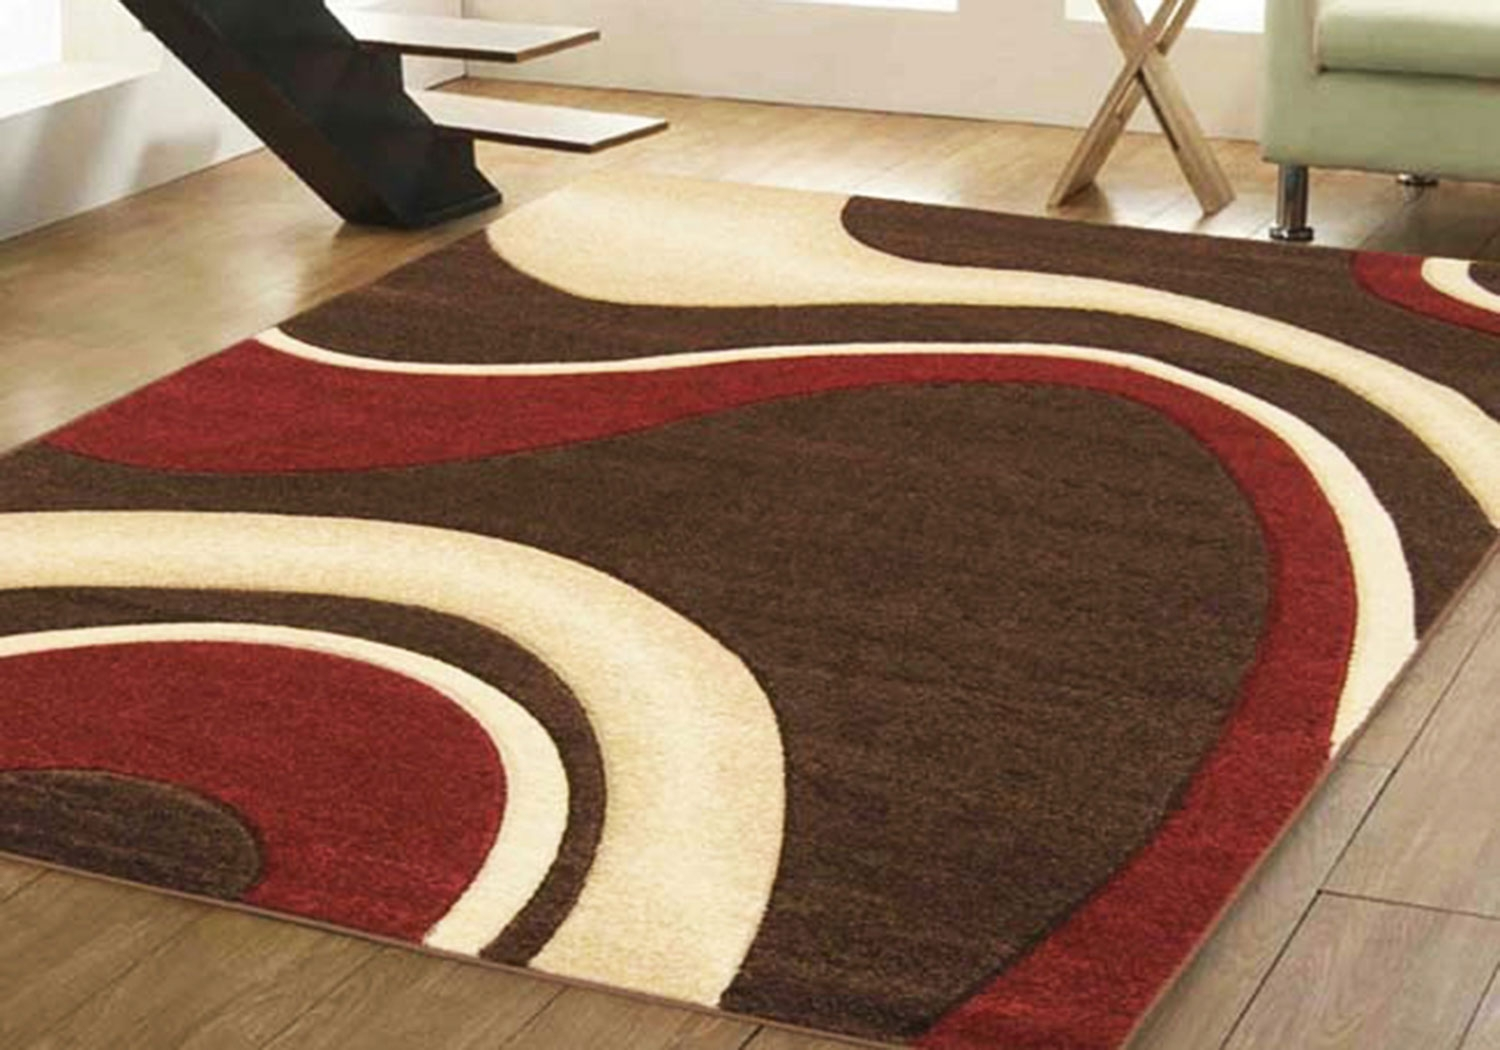 Small Extra Large Modern Brown Blue Green Red Swirl Design Throughout Large Red Rugs (View 3 of 15)